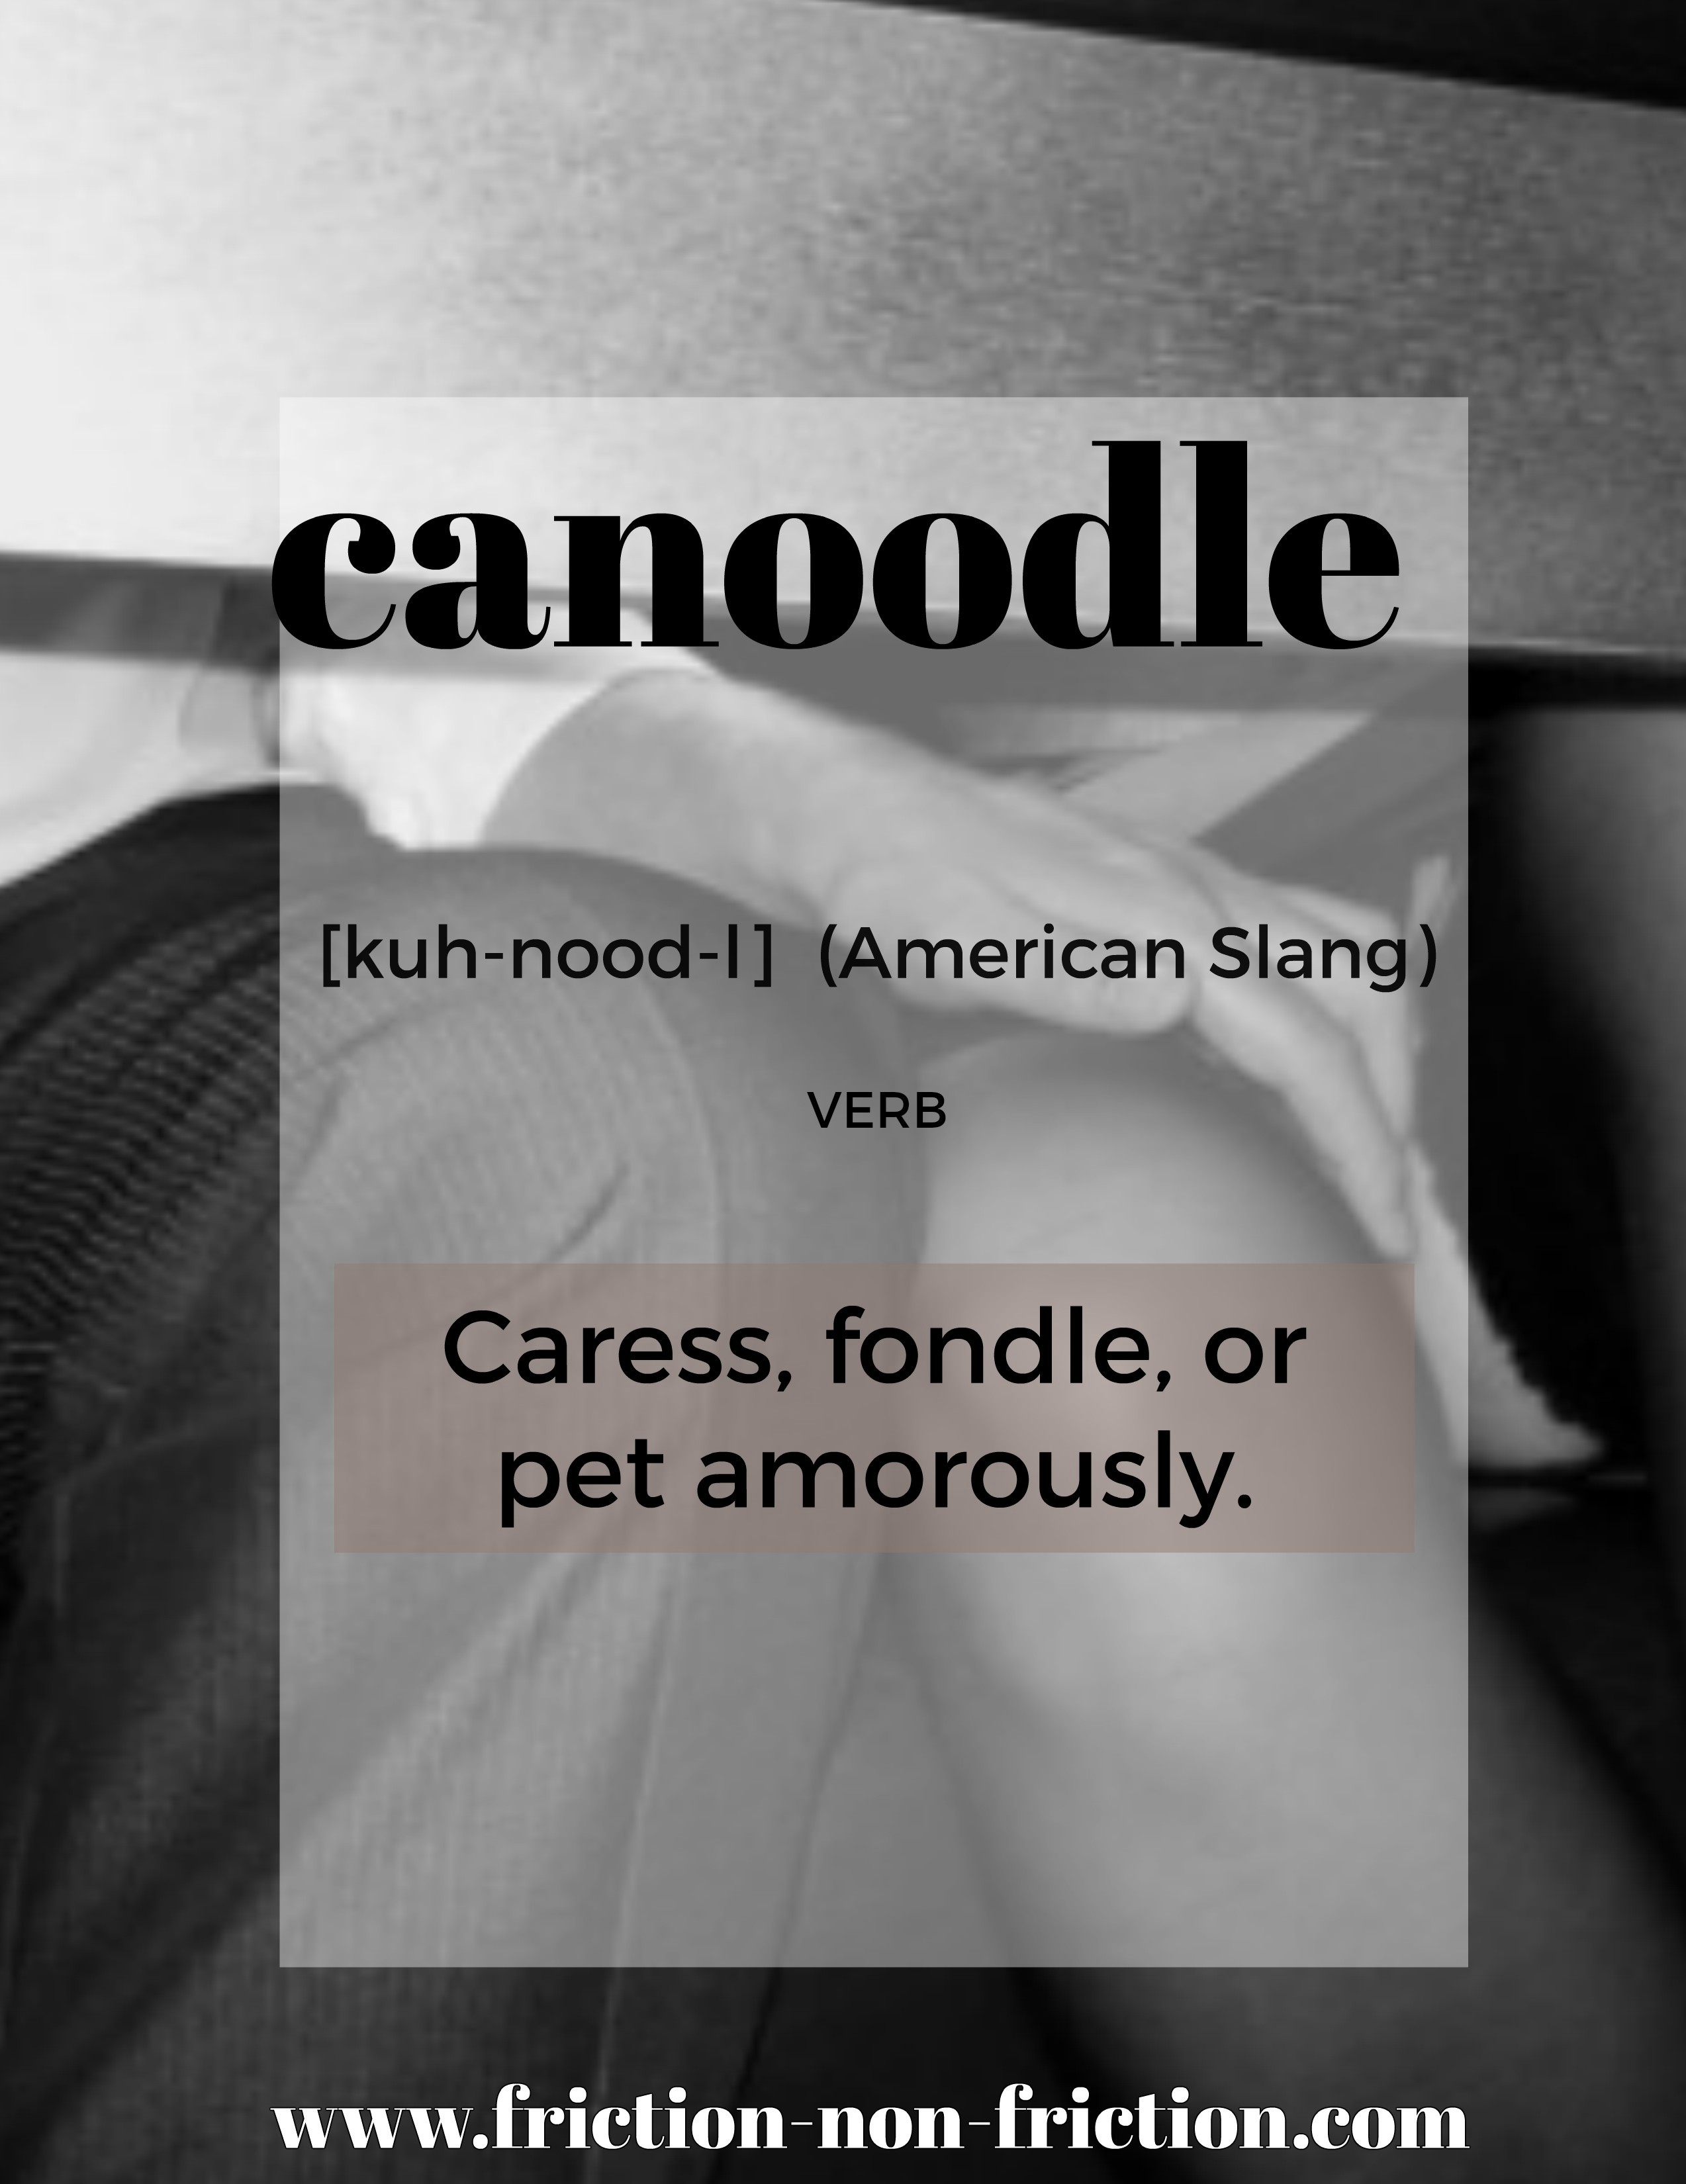 Canoodle -- another great FRICTIONARY definition from Friction|non|Friction